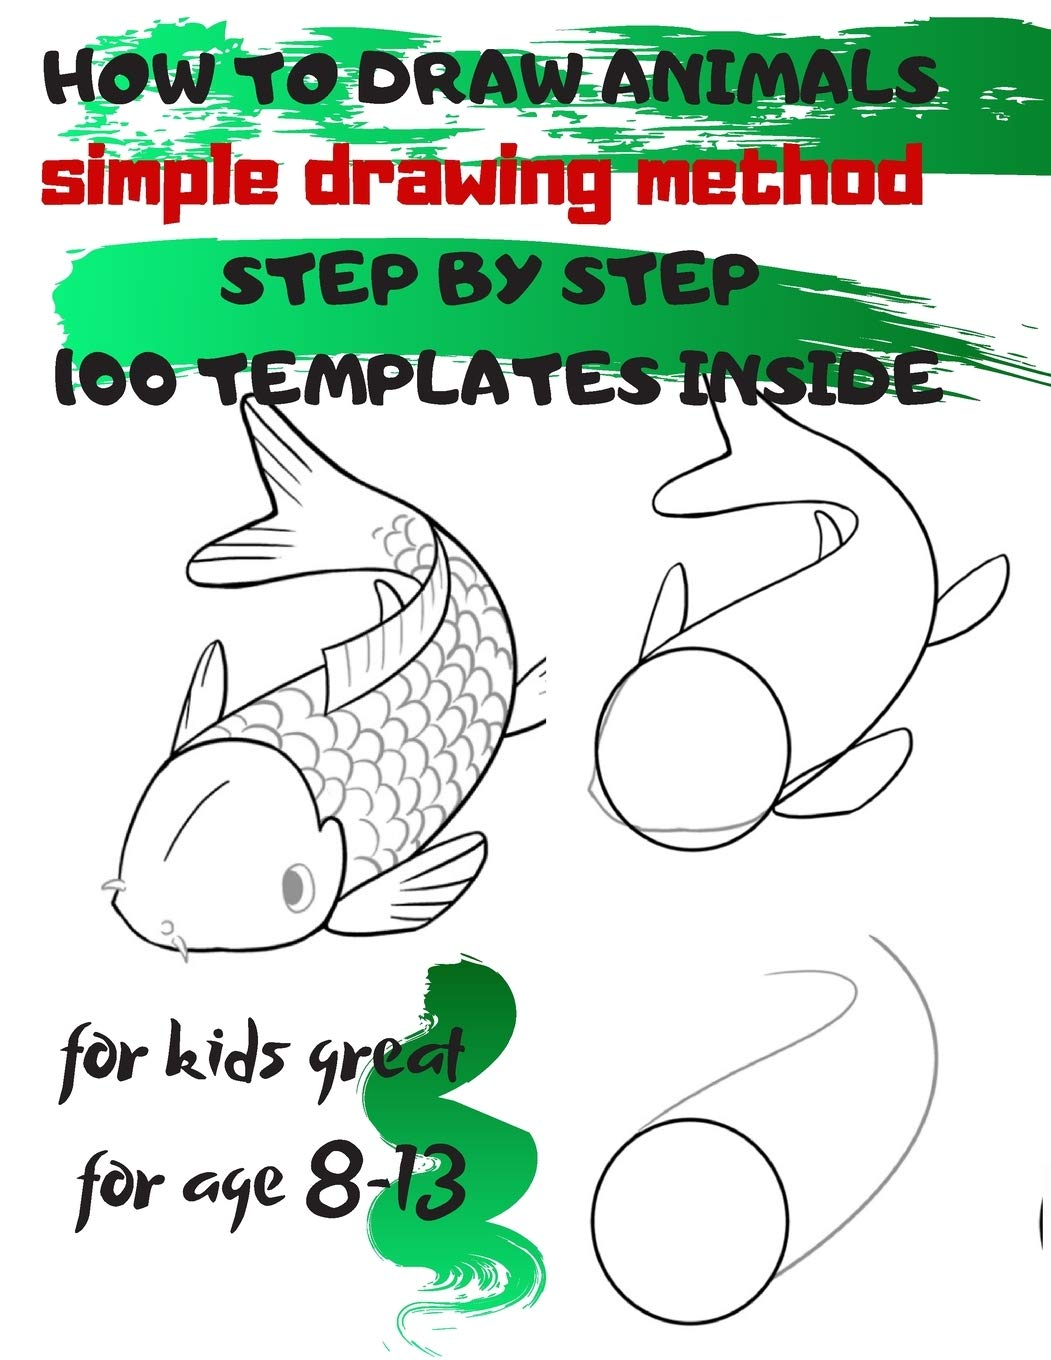 How To Draw Animals Simple Drawing Method Step By Step 100 Templates Inside Sketchbook For Kids 100 Drawings Cool Stuff For Kids Great For Age 8 13 Amazon Co Uk Project Universal 9781677174775 Books